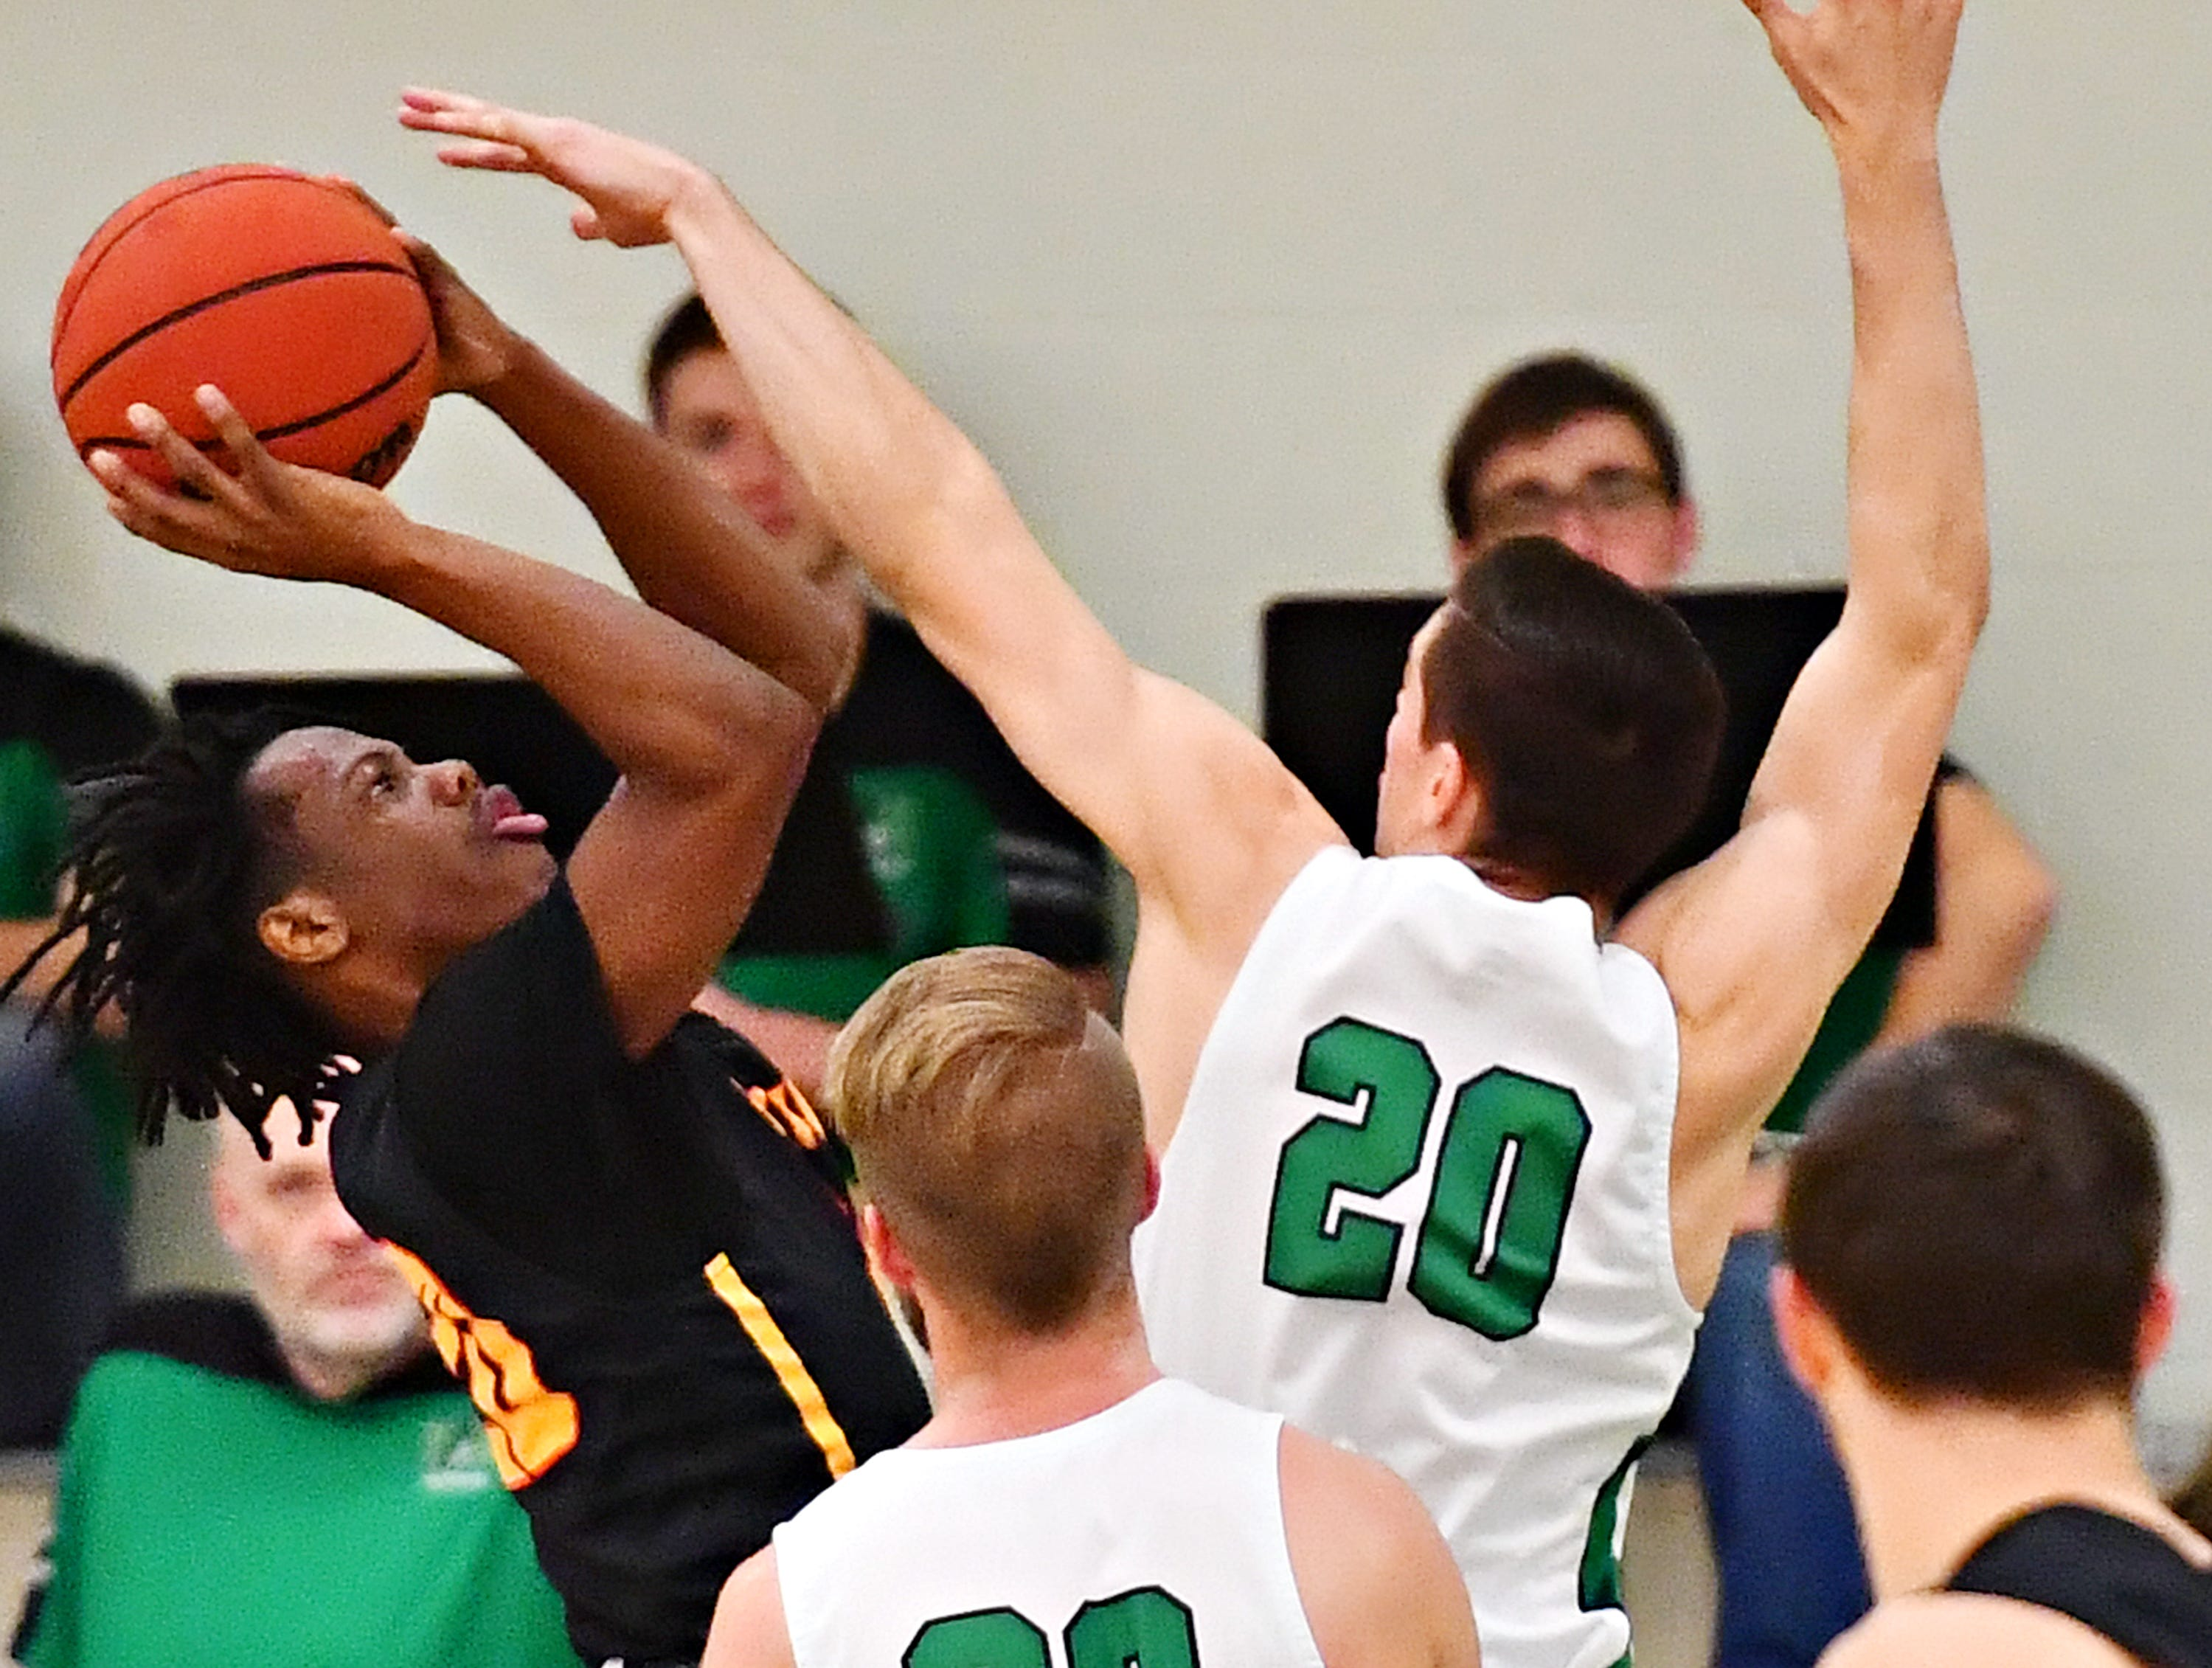 York College vs Gwynedd-Mercy during men's basketball action at Grumbacher Sport and Fitness Center in Spring Garden Township, Wednesday, Nov. 28, 2018. York College would win the game 85-62. Dawn J. Sagert photo